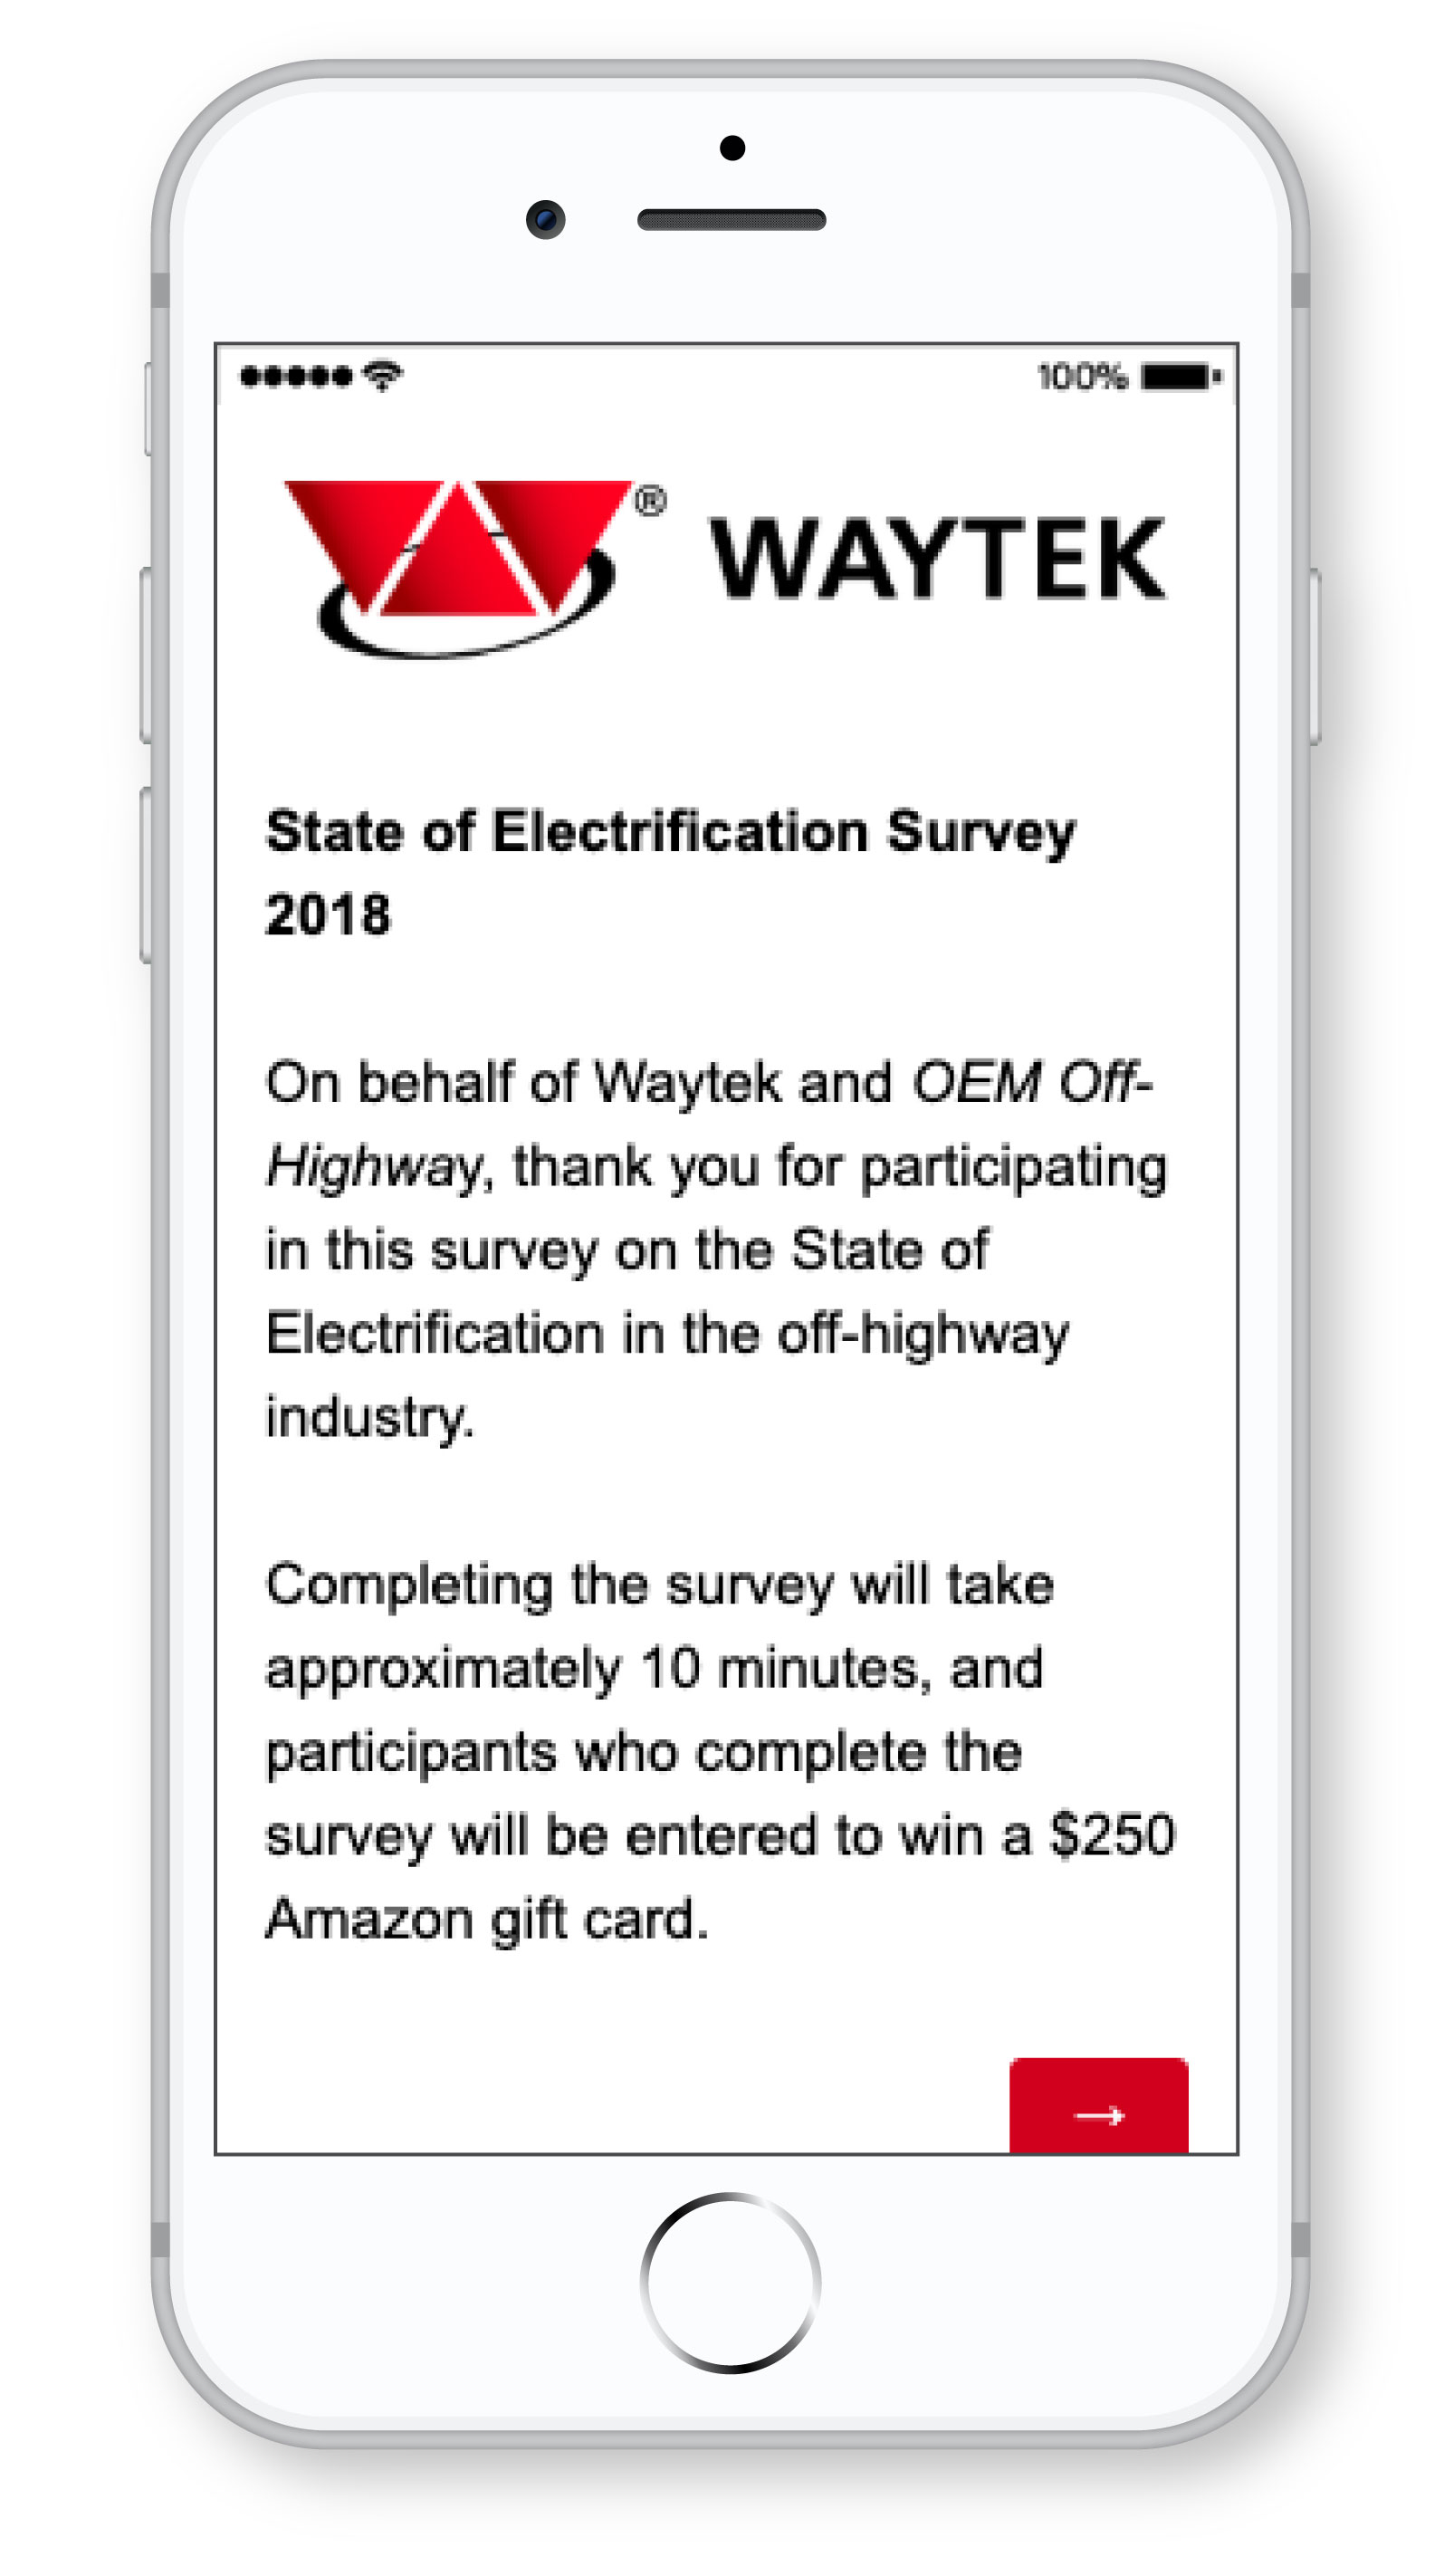 Waytek_Survey on Electrification_iPhone.jpg